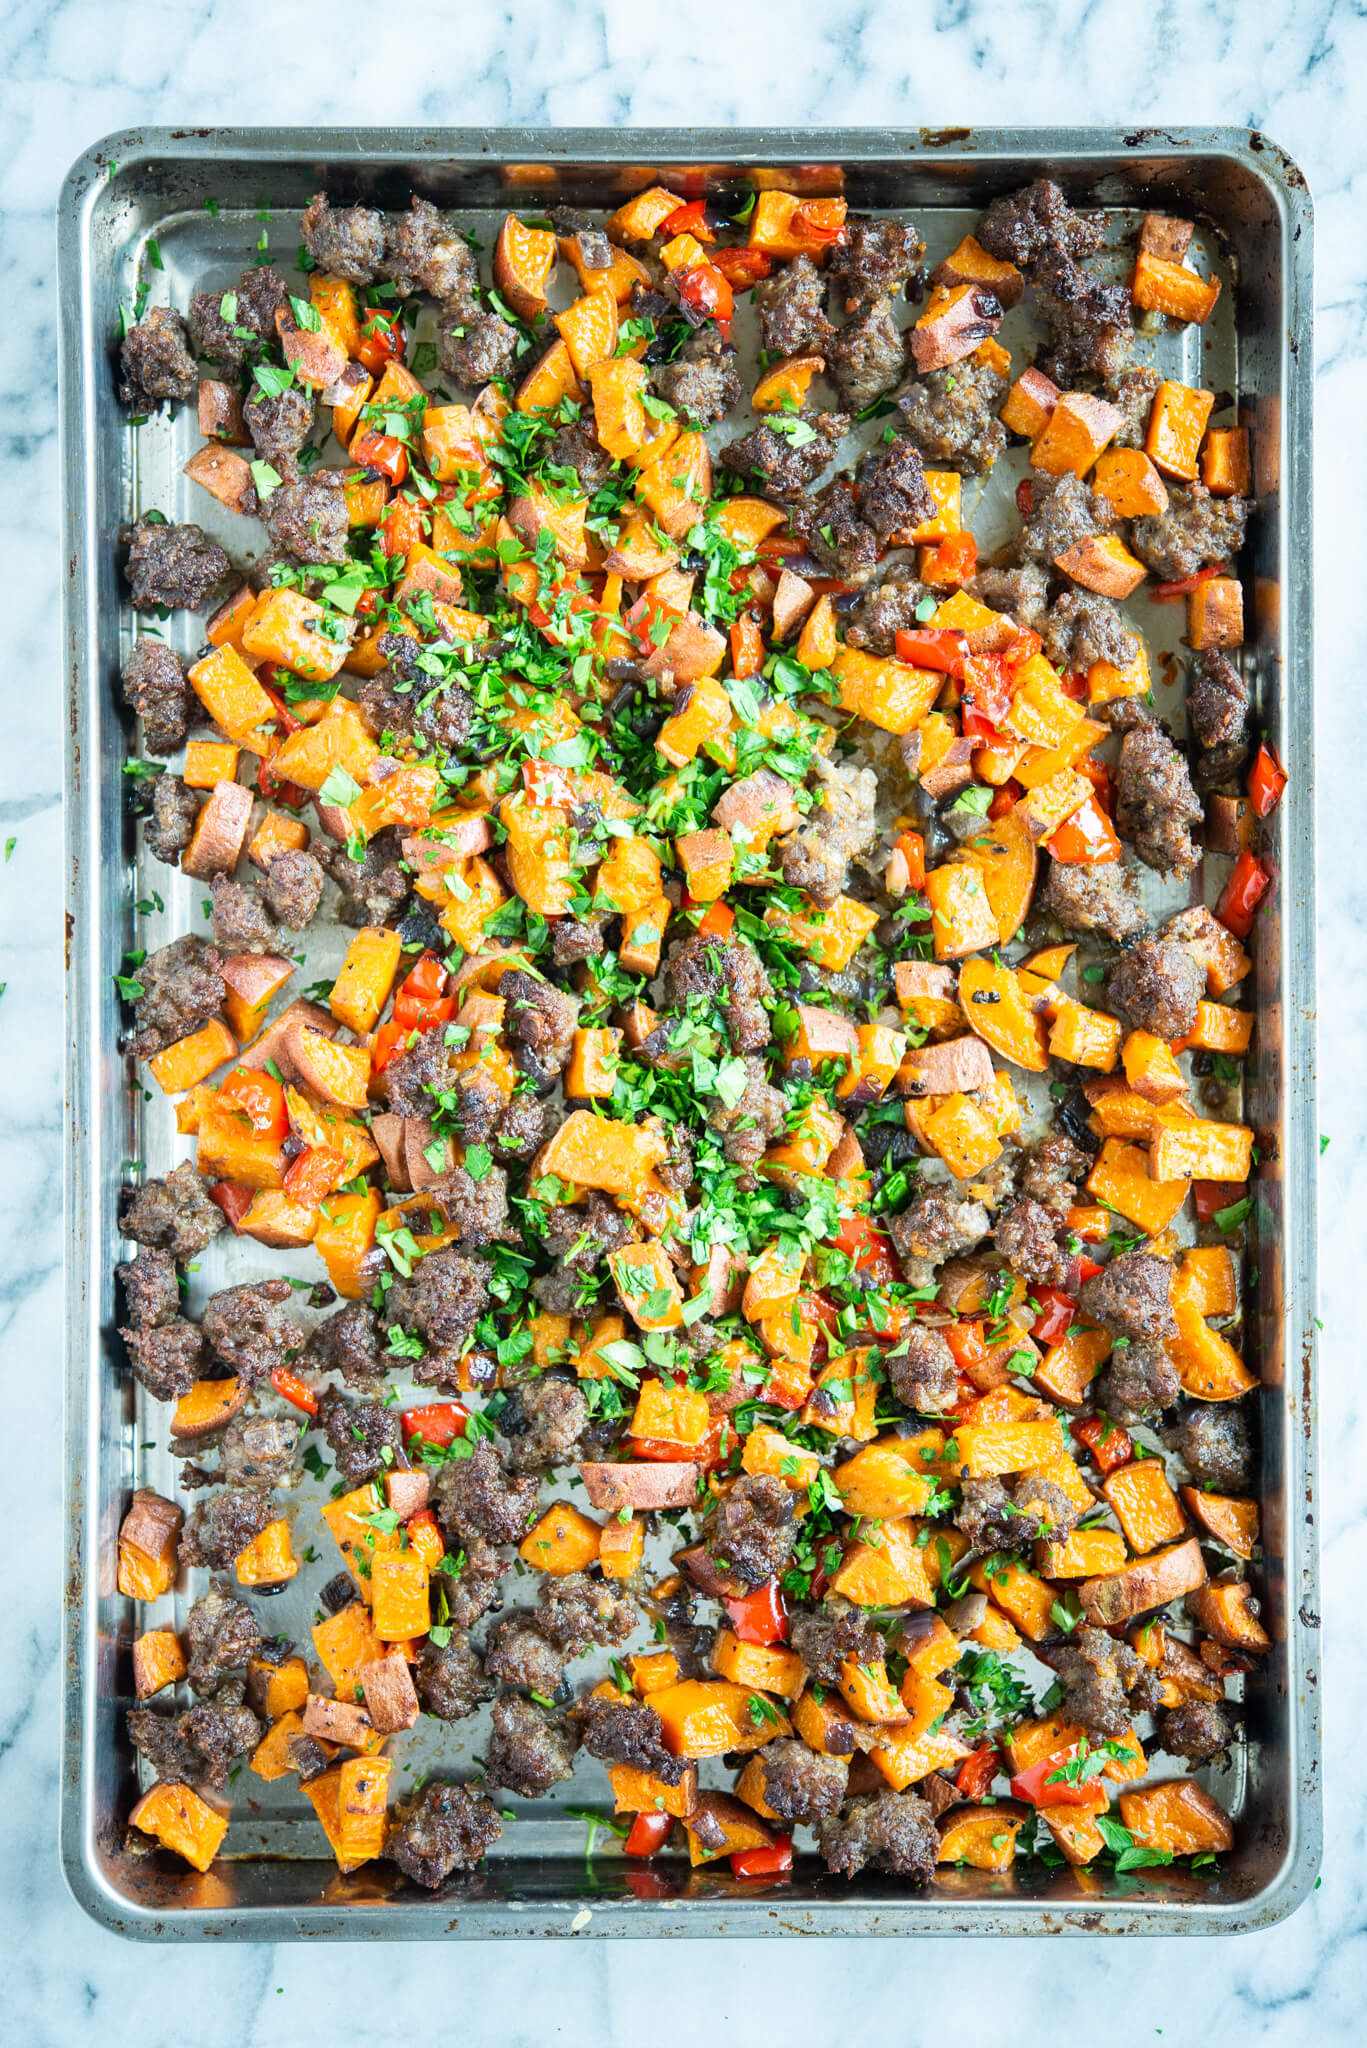 sweet potato hash - crumbled sausage, bell pepper, and sweet potato breakfast hash on a sheet pan on a marble surface